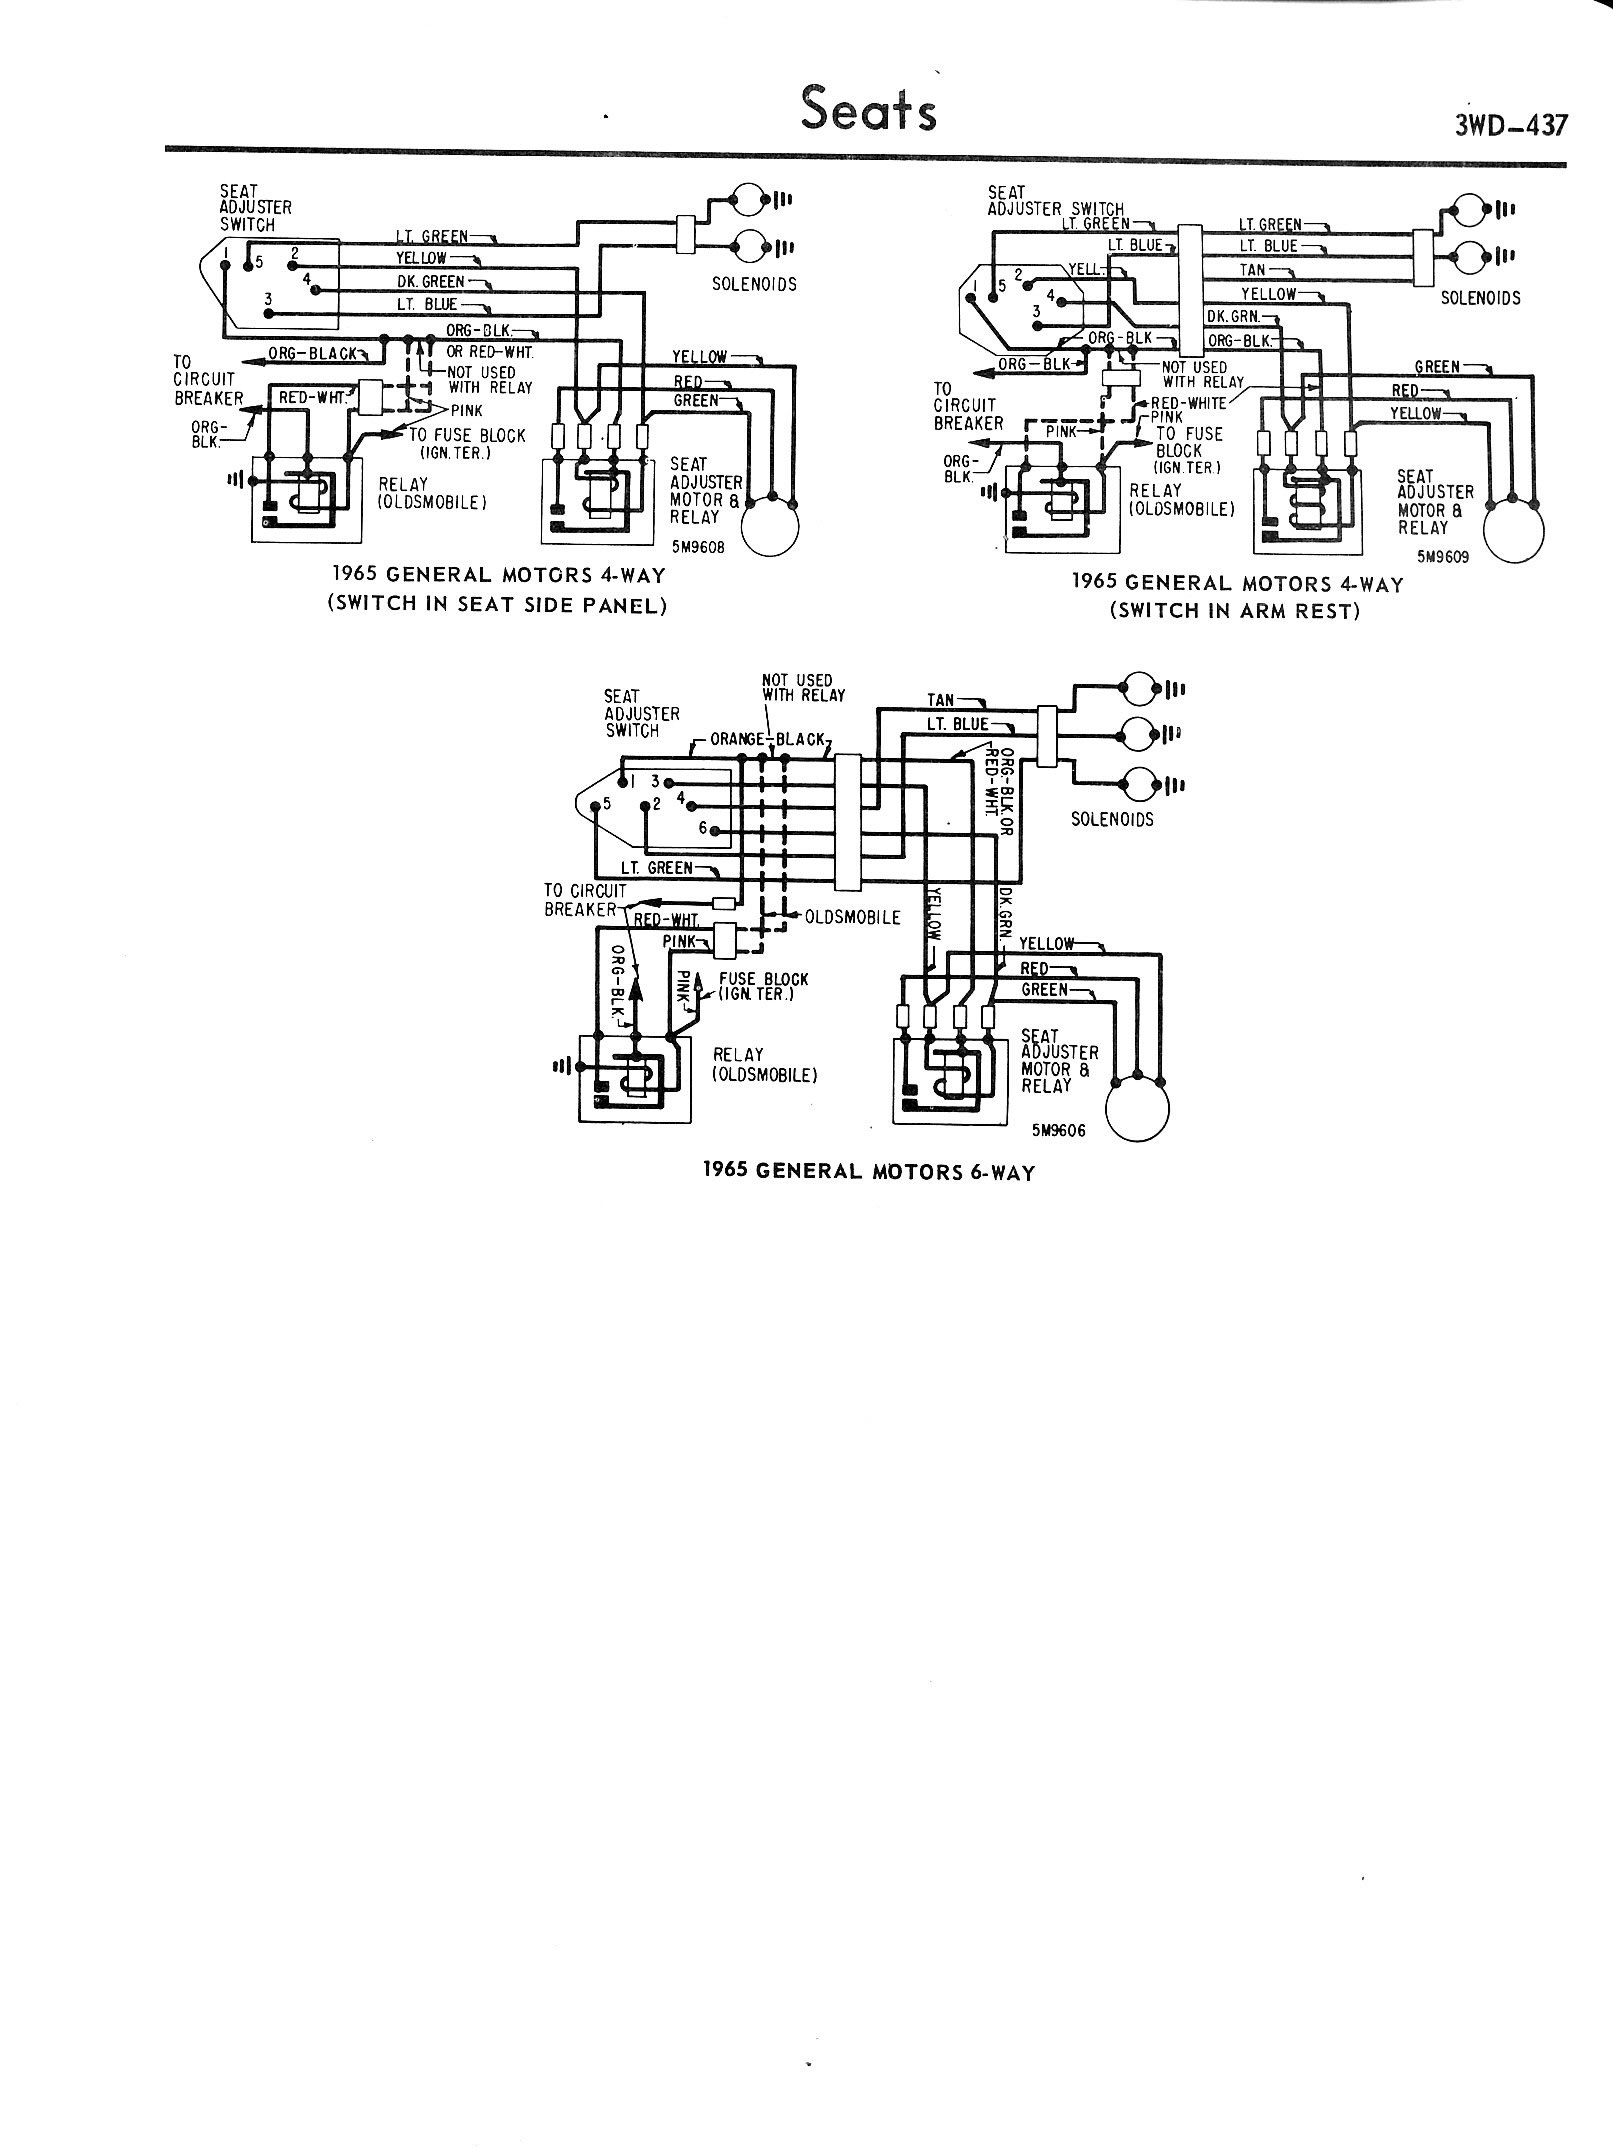 Chevy Diagrams General Electric Induction Motor Wiring Diagram D 57 64 Gm